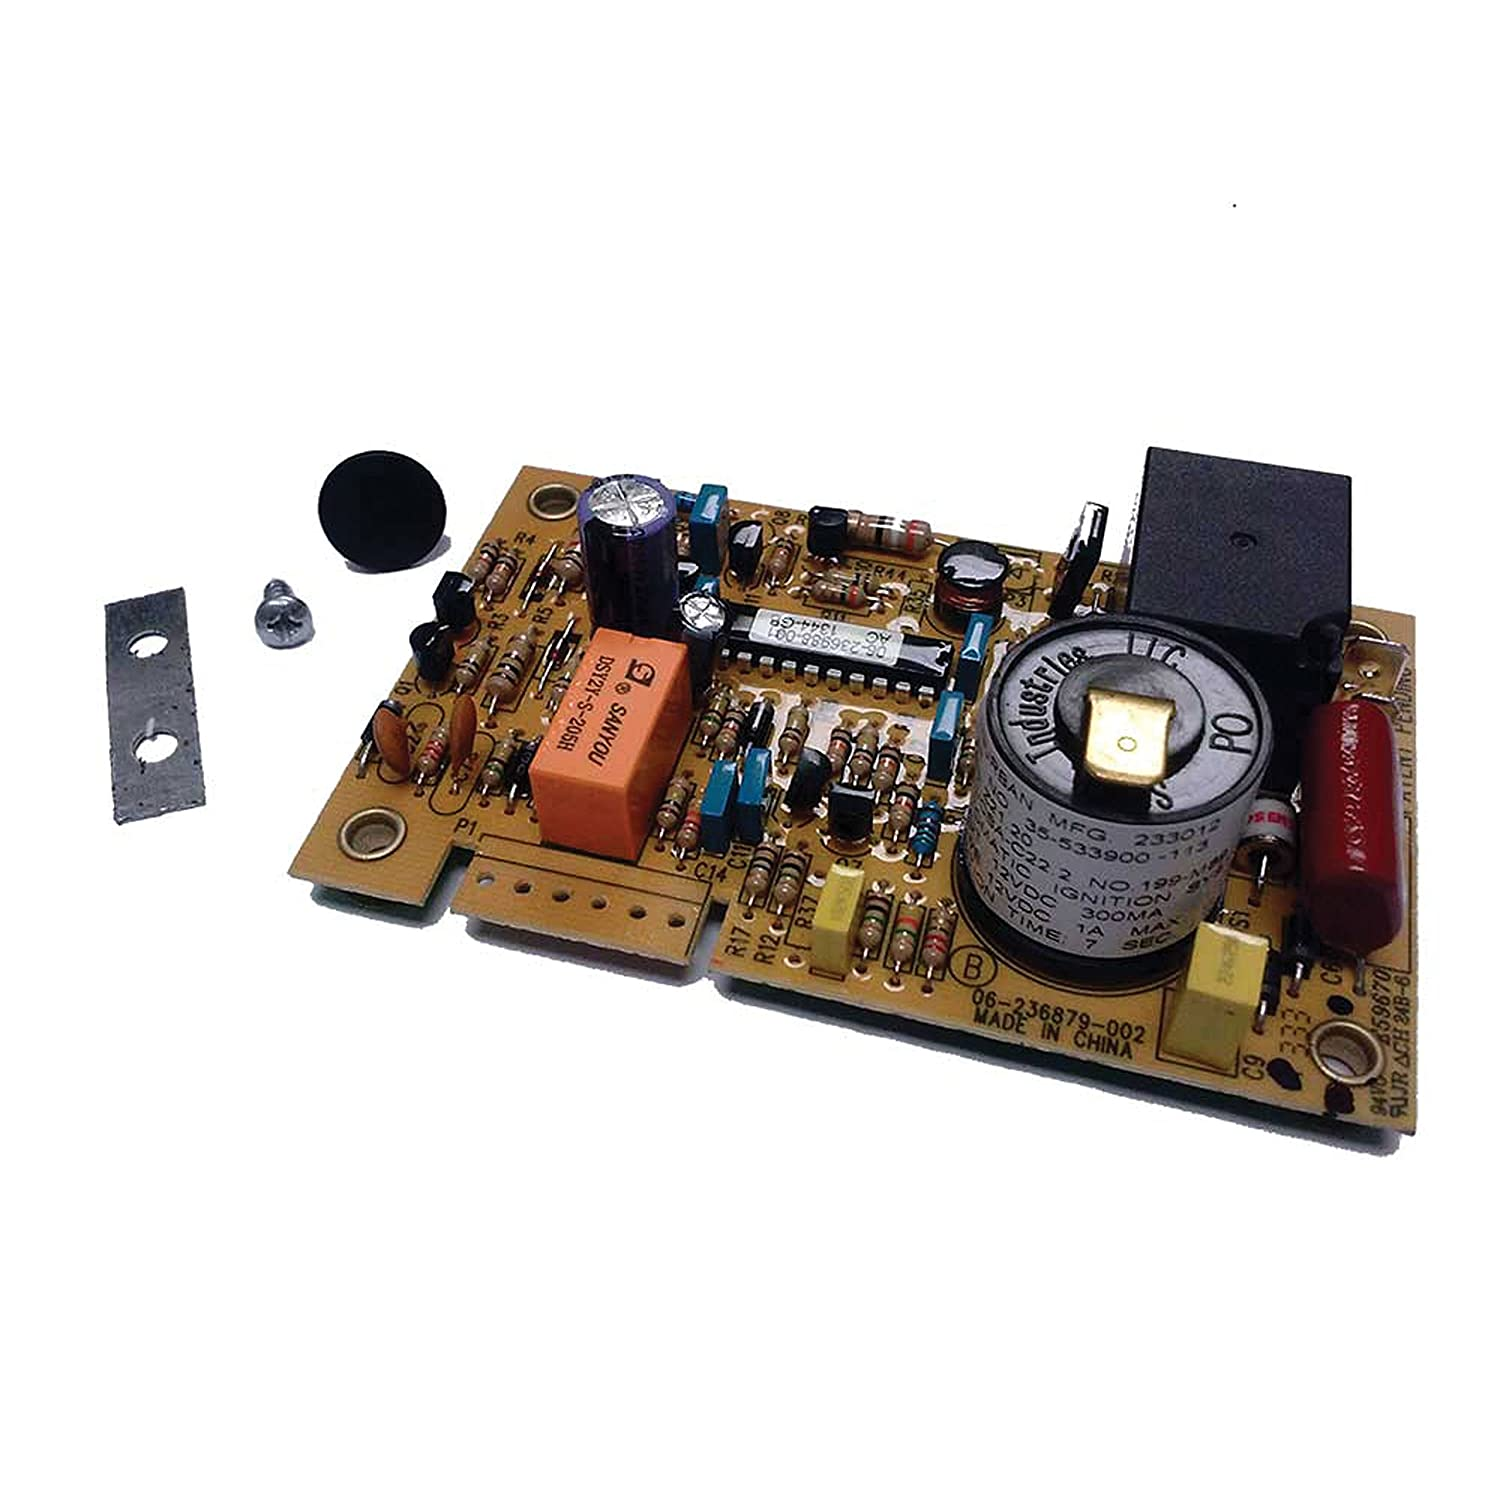 81UT6L8ZdfL._SL1500_ amazon com suburban 521099 3g furnace fan control board automotive Cal Spa Wiring Diagram at fashall.co